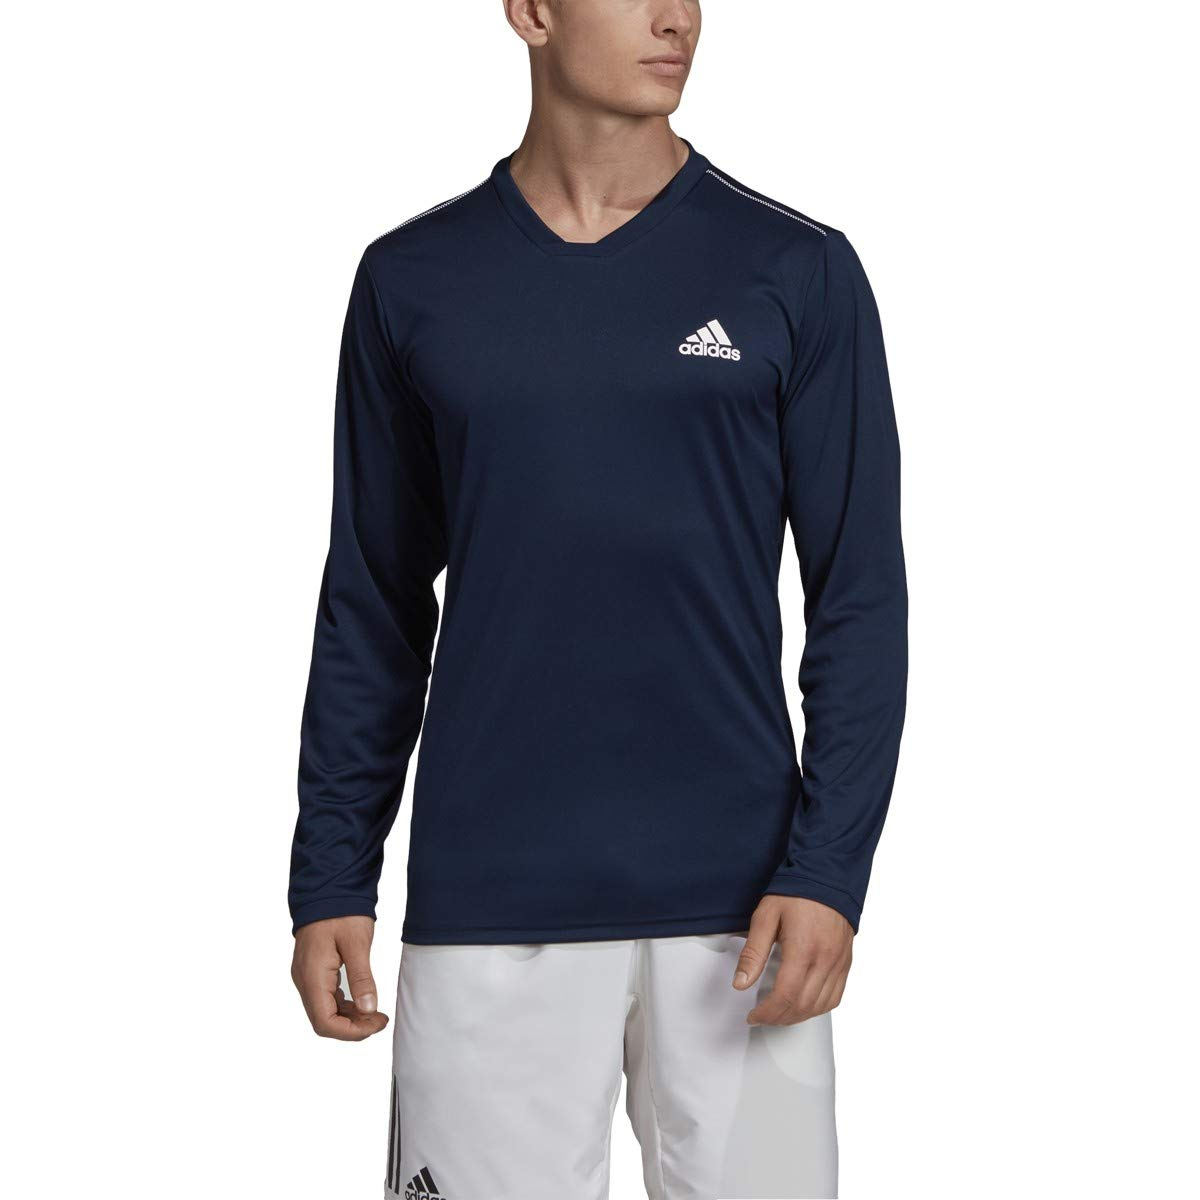 adidas Uv Protect Long-Sleeve Tennis Tee, Collegiate Navy/White, Small